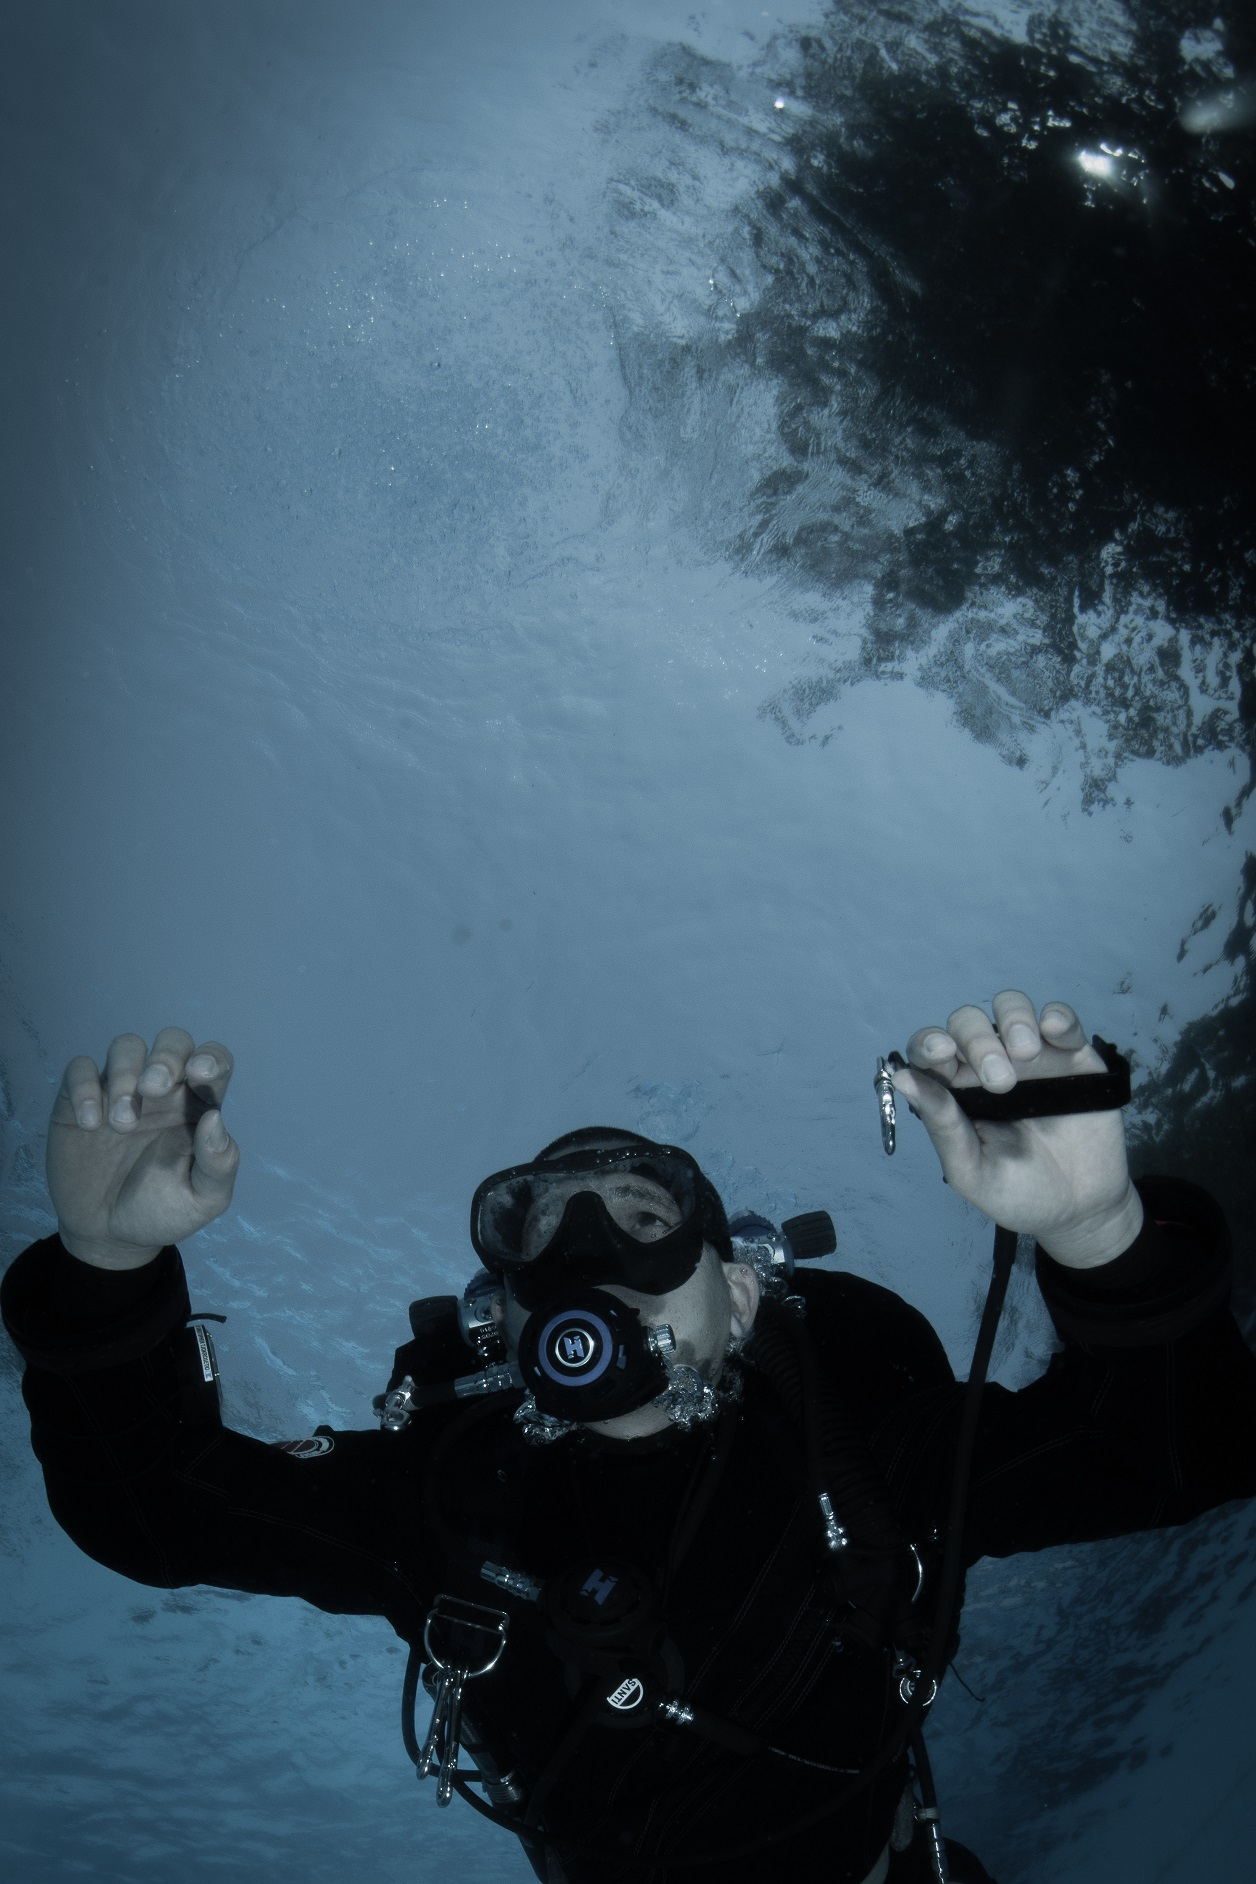 Diving a drysuit